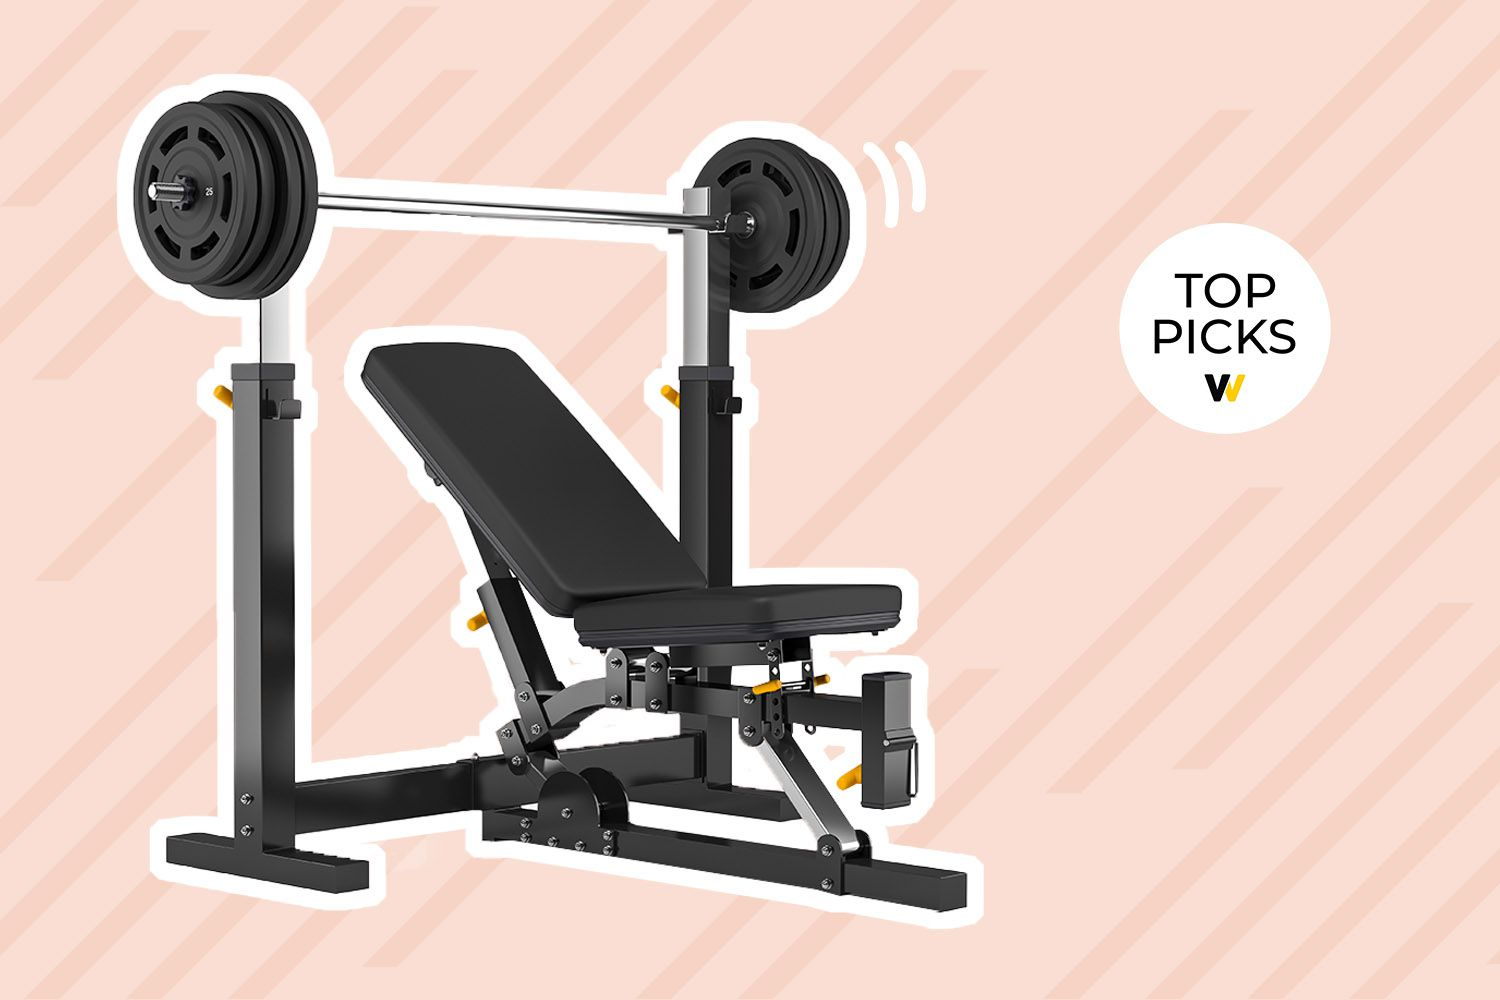 Weight Benches for Full Body Workout Perfect Workout Bench